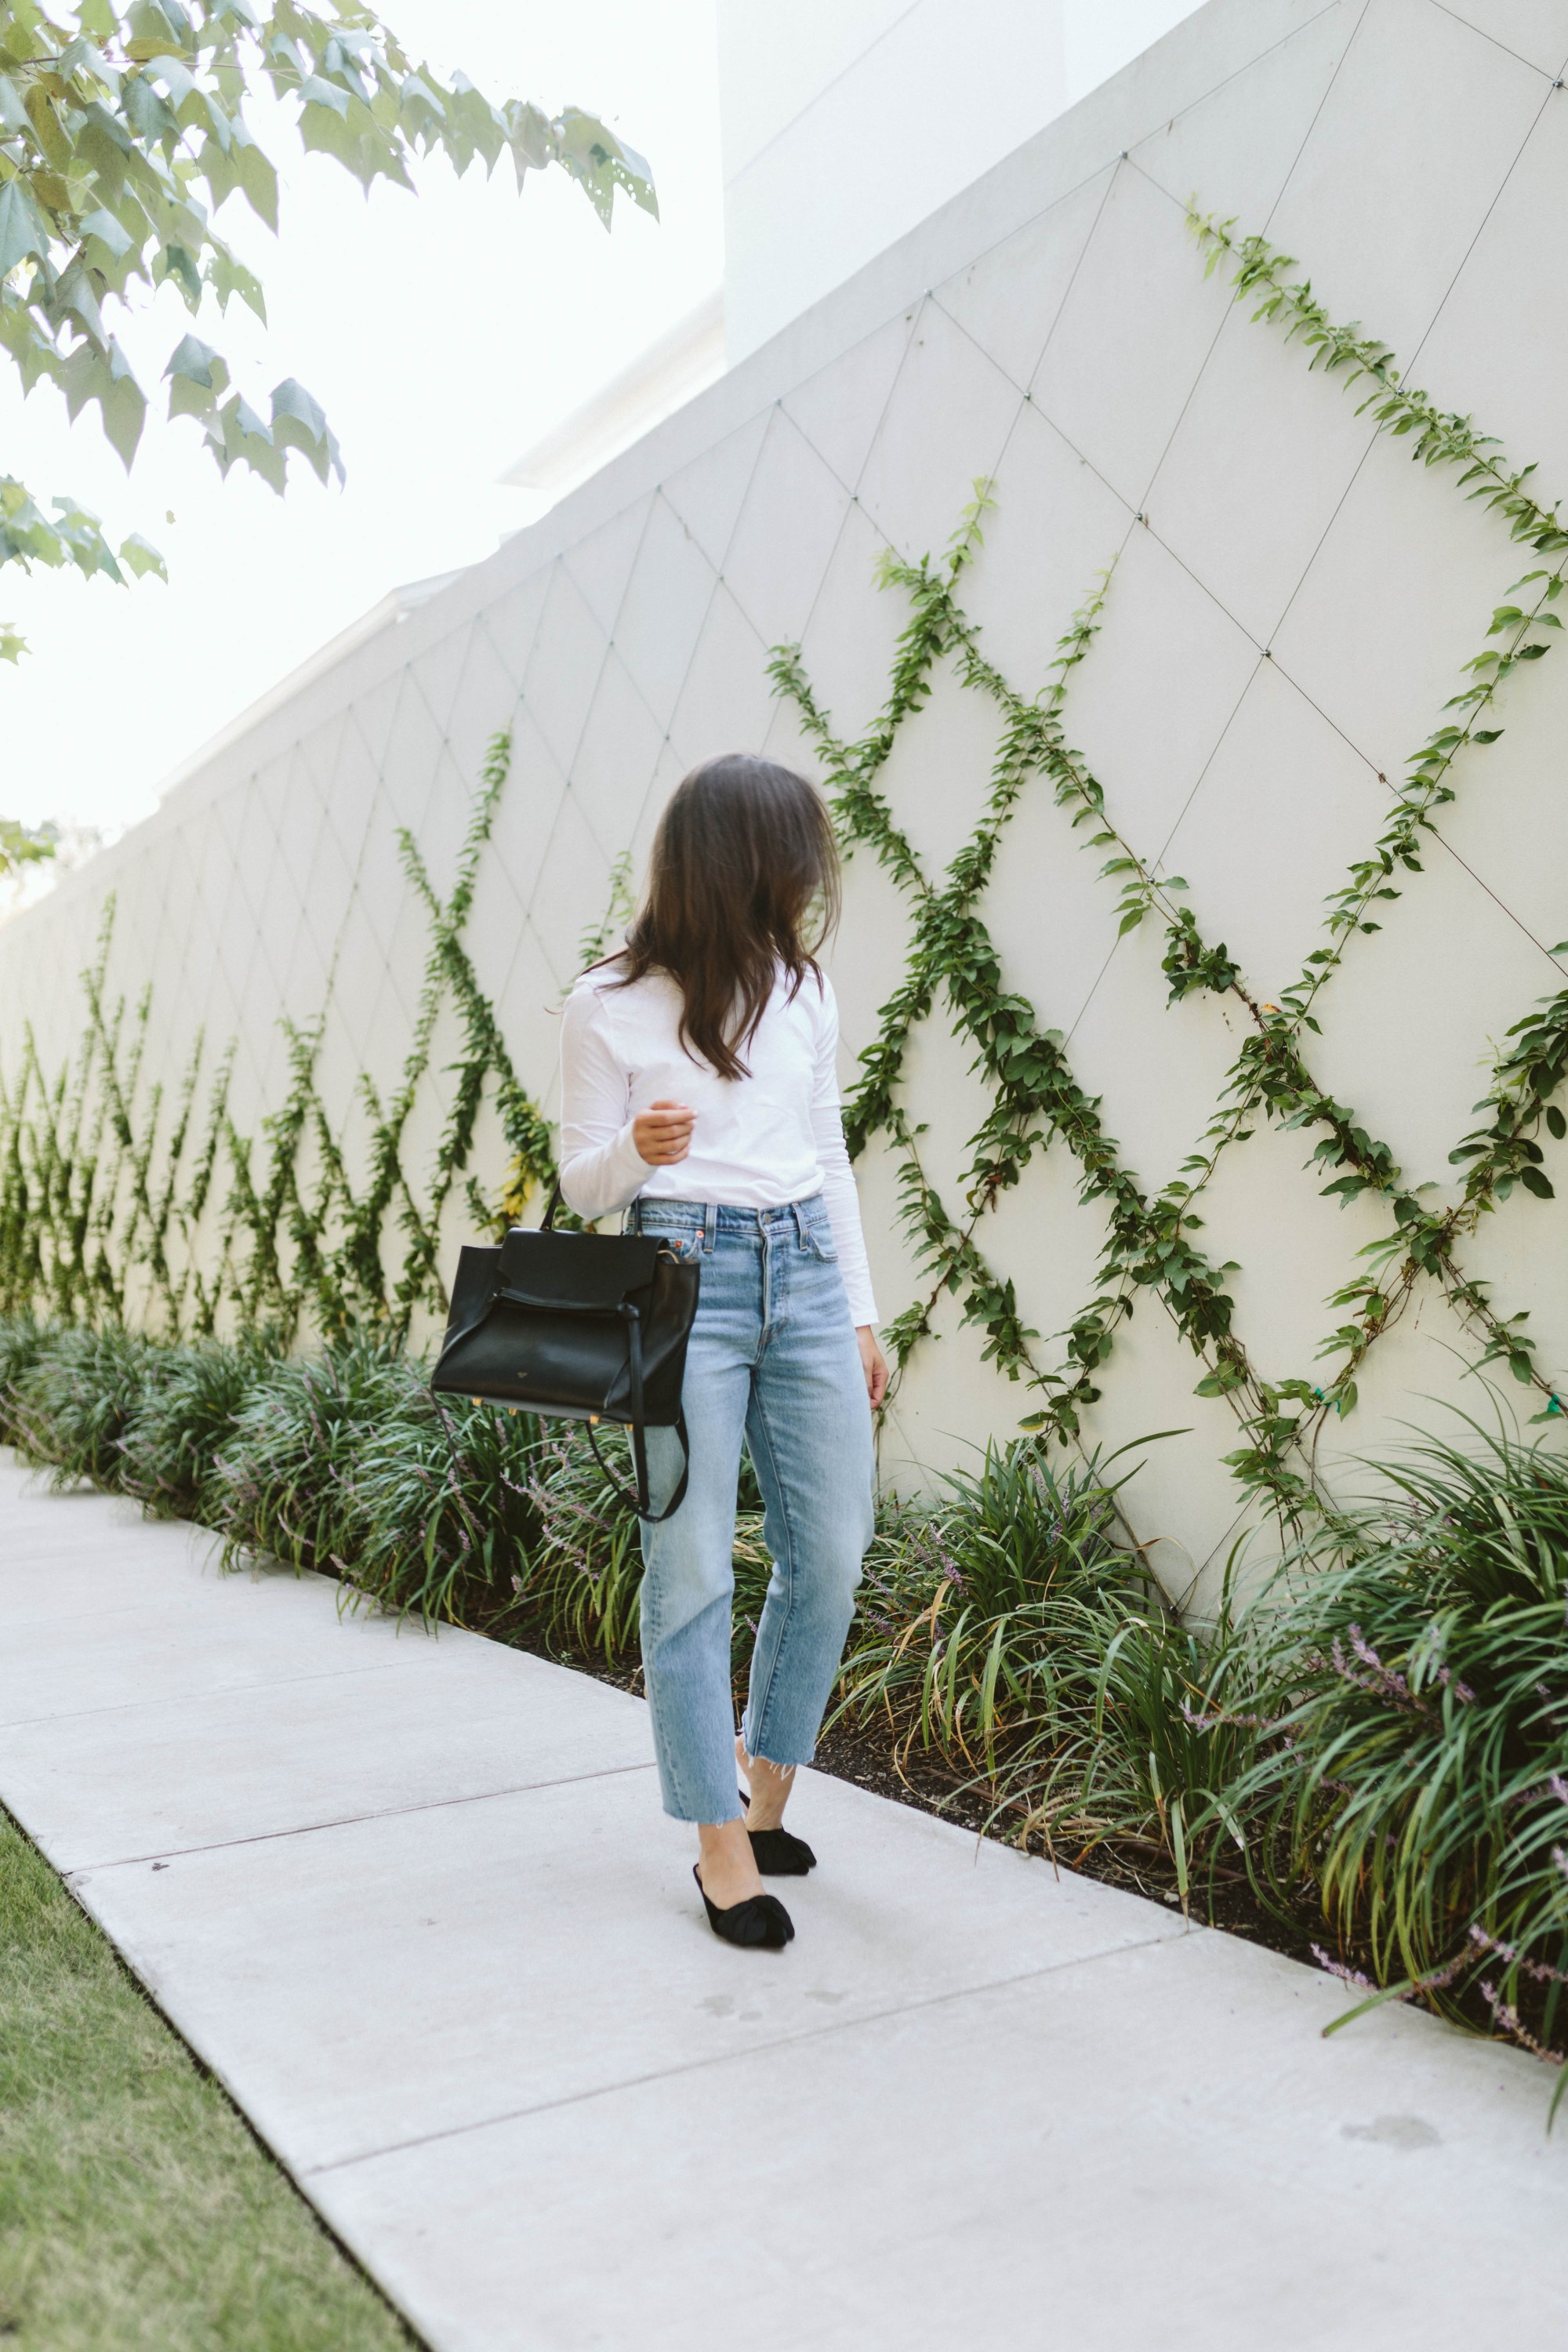 JBrand White Cropped Tee and Levis